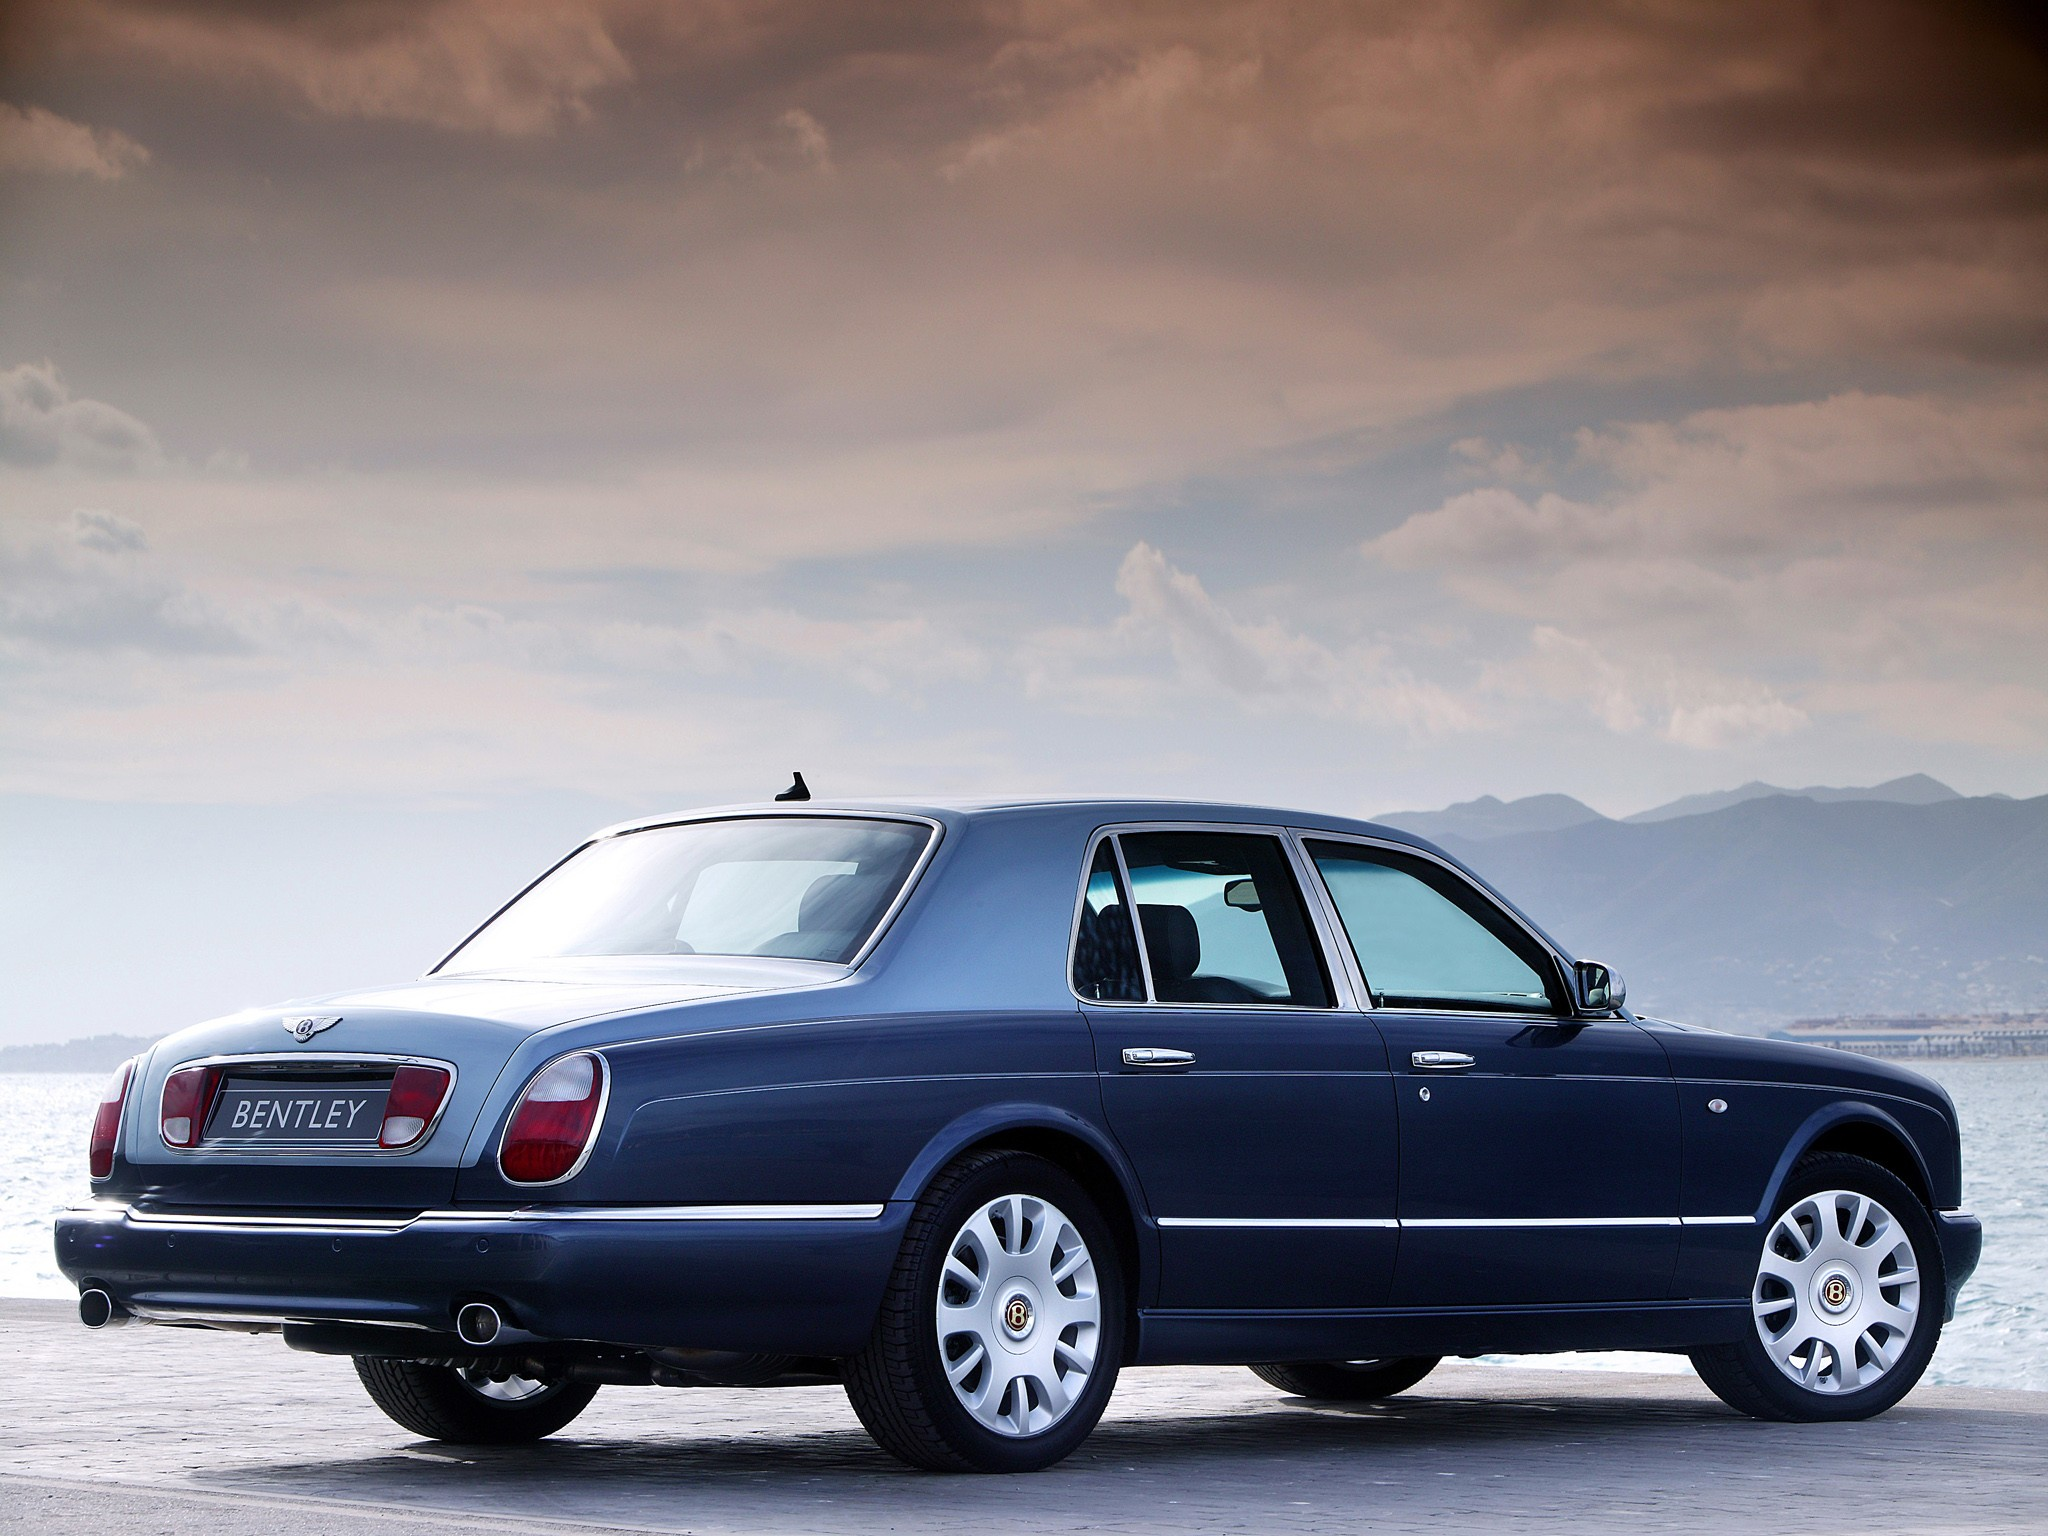 Bentley Arnage R on 2005 Bentley Continental Gt